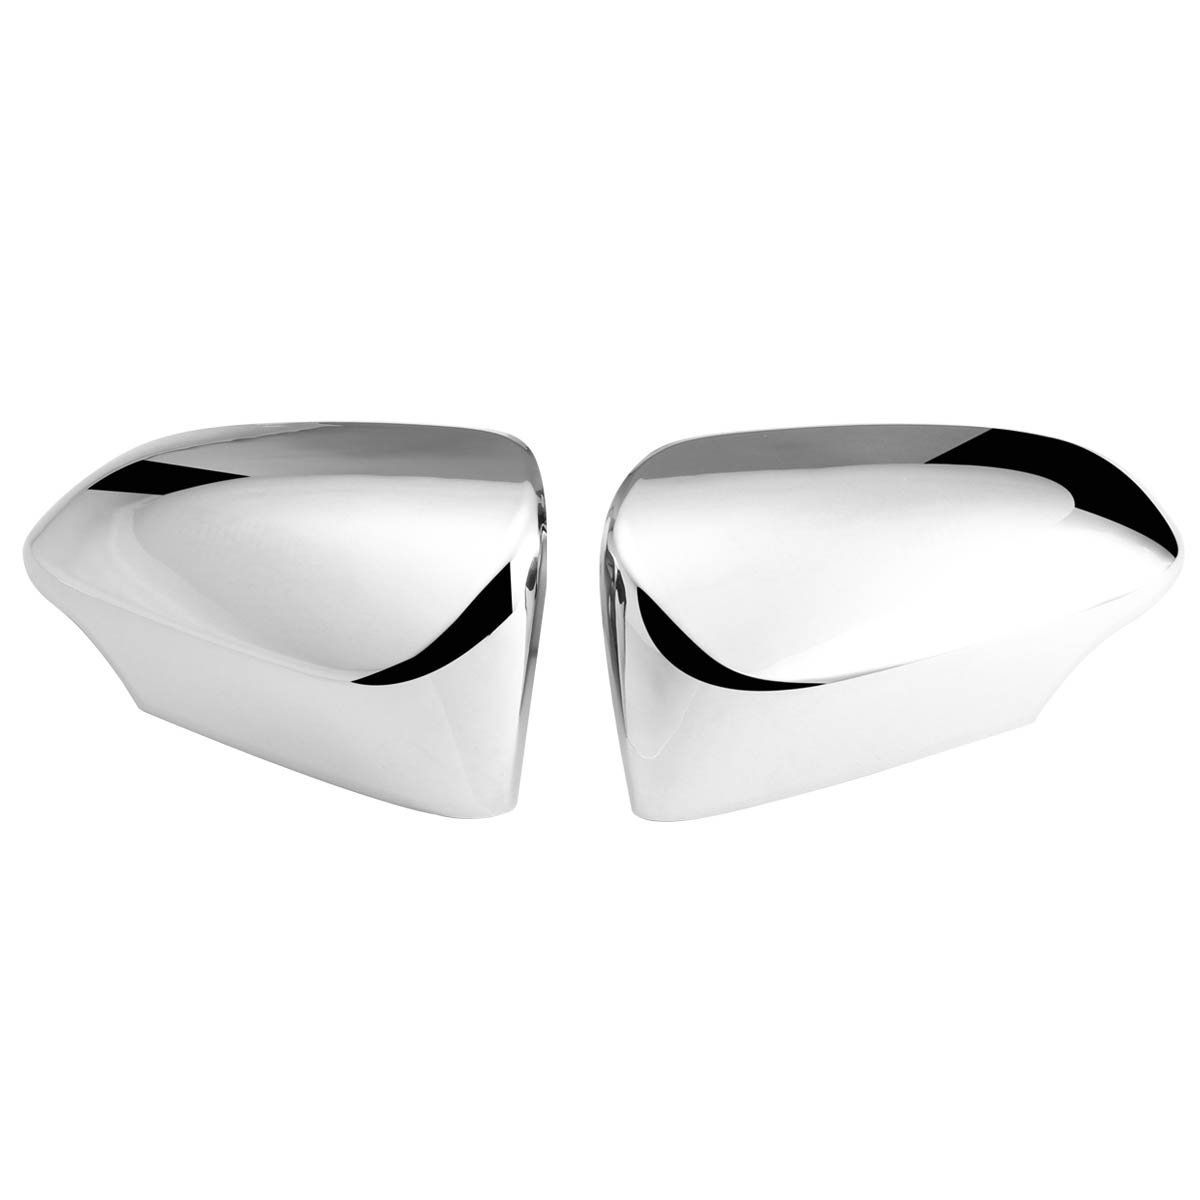 SIDE MIRROR COVERS FOR FORD FIGO (SET OF 2PCS)